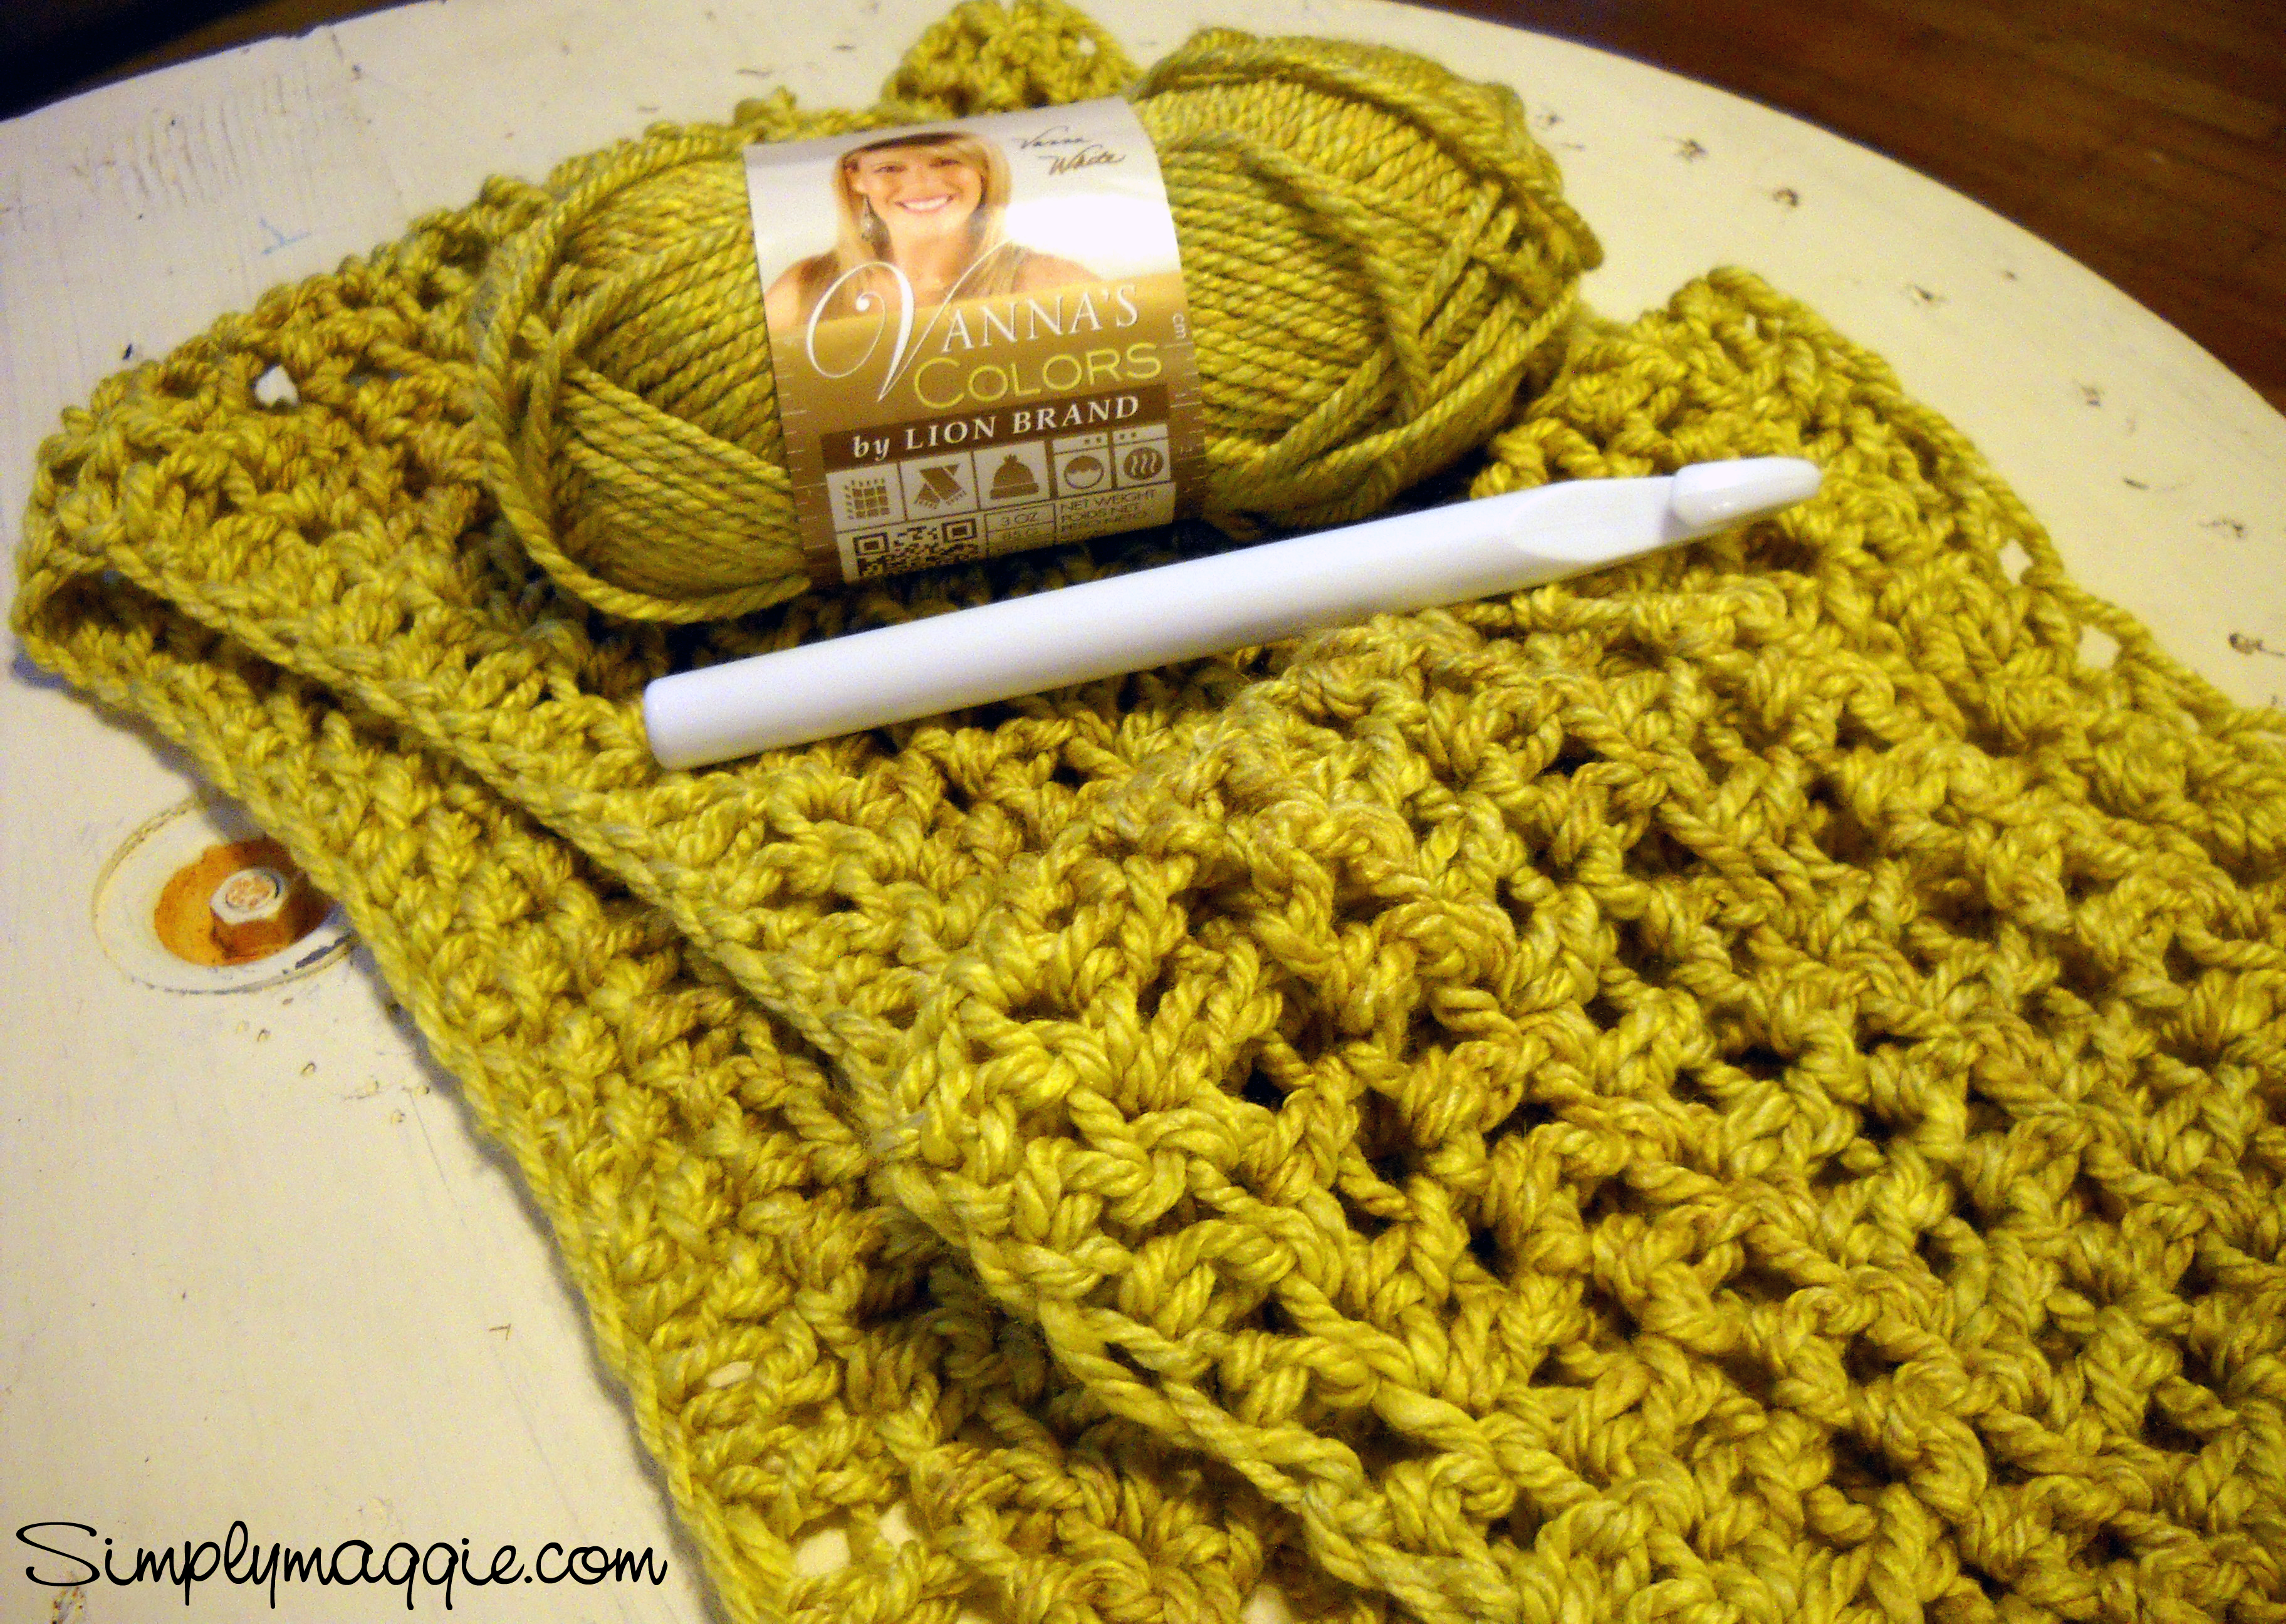 Crochet A Cozy Blanket For Beginners Simplymaggie Com